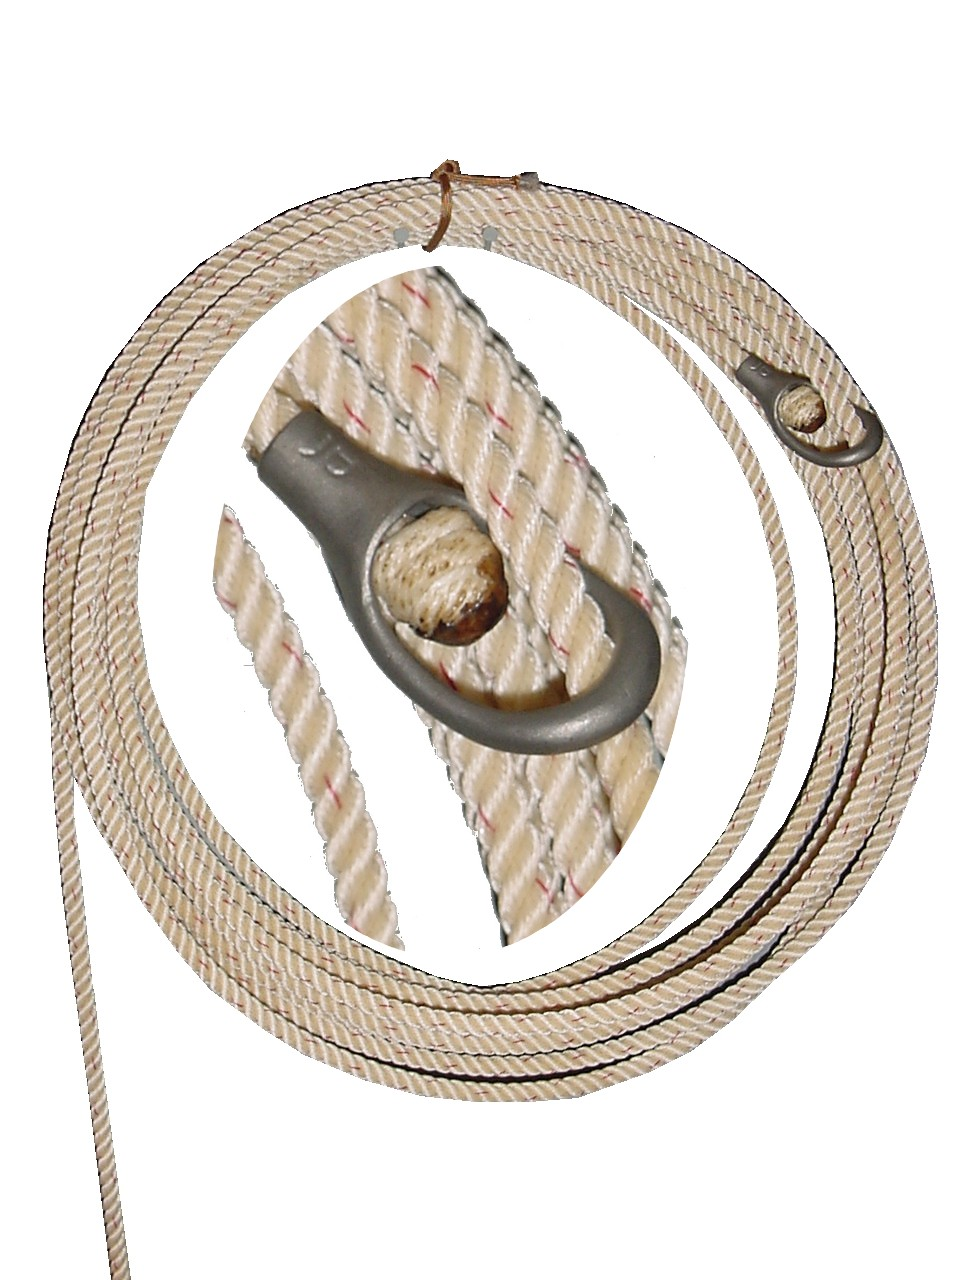 Ranch Rope, Poly blend, 40 & 50 foot/ custom lengths, Metal or rawhide honda